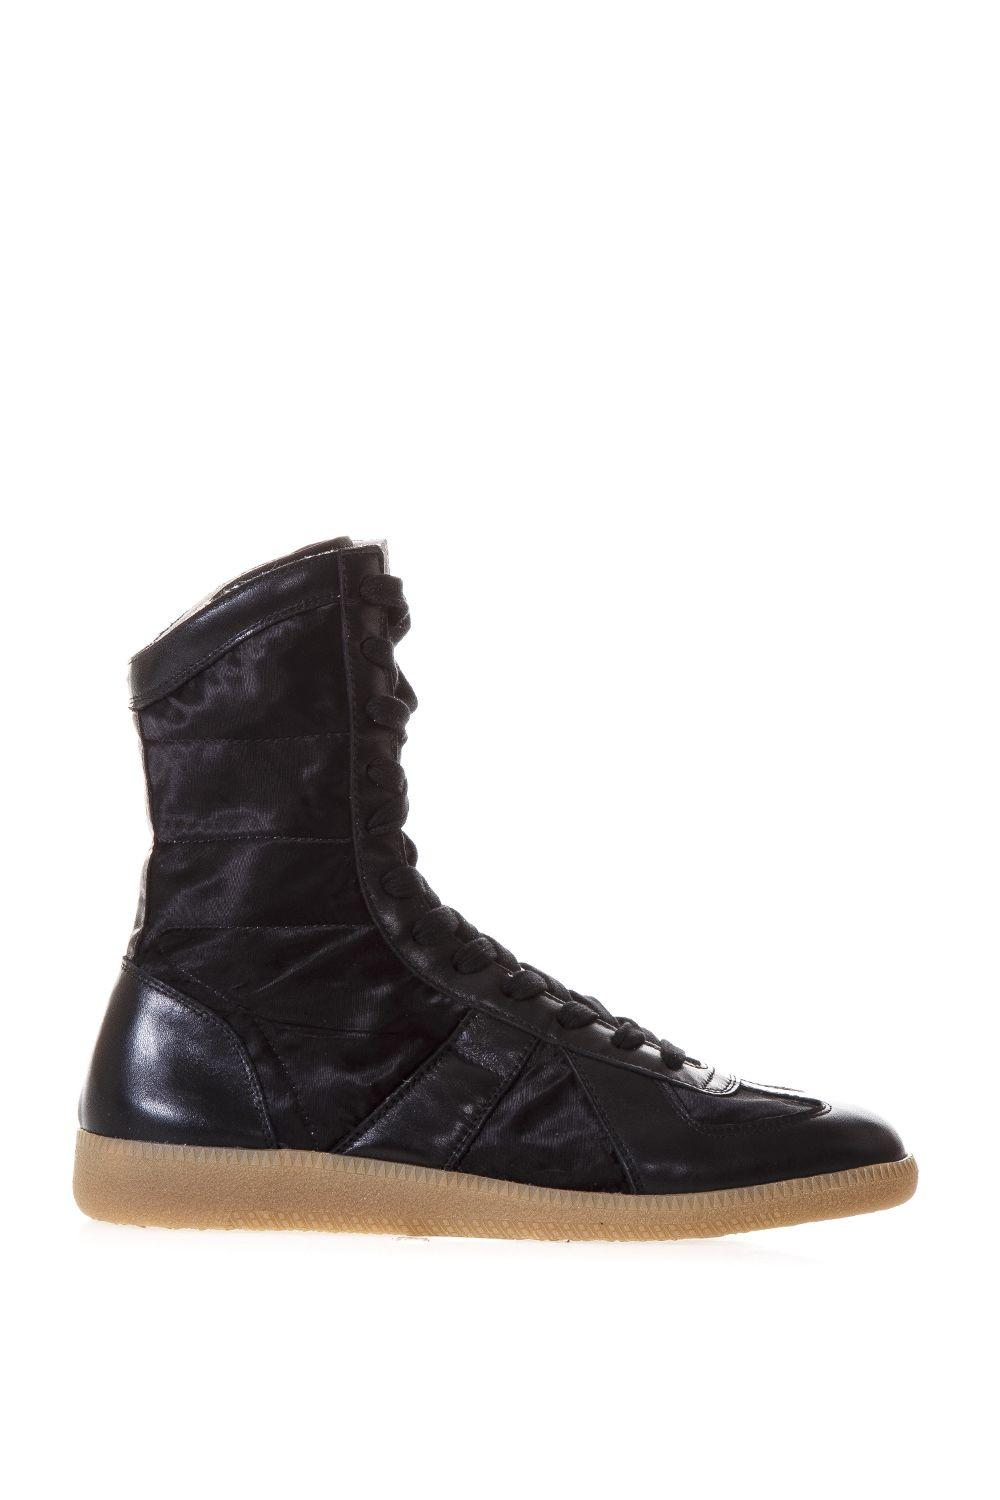 Maison Margiela Replica Boxing Satin & Leather High-Top Sneakers In Black